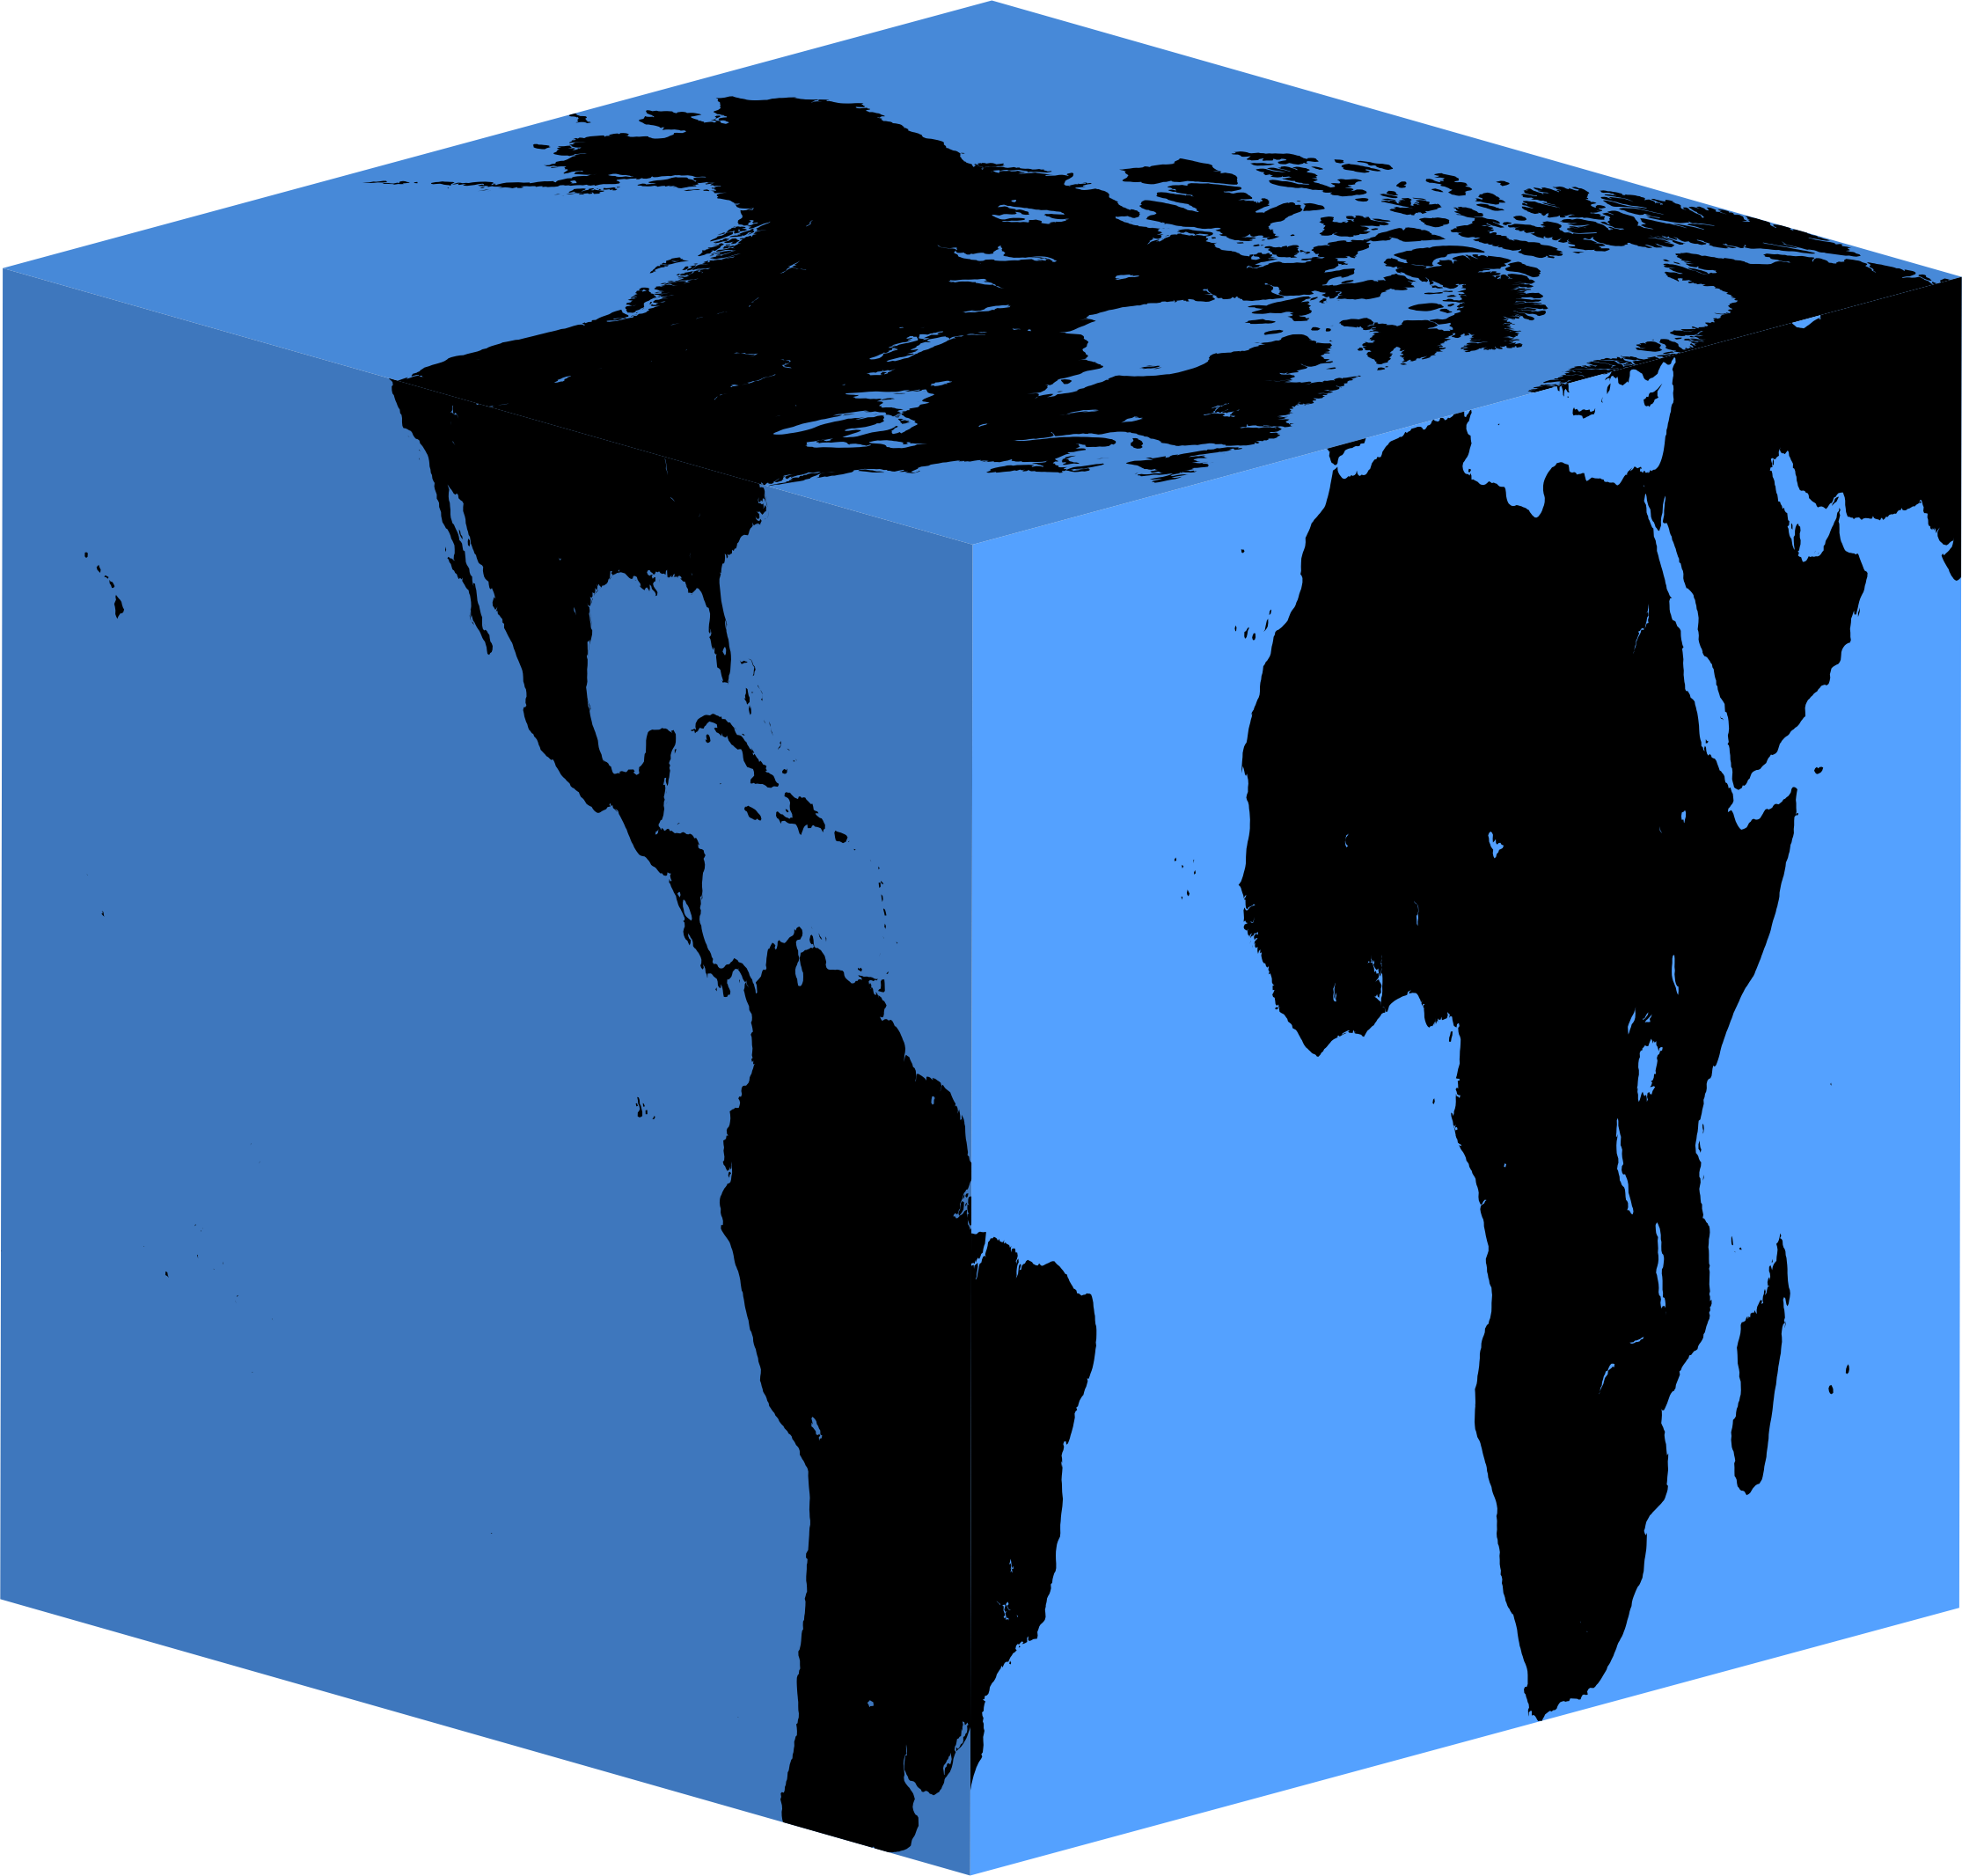 Cube earth big image. Planets clipart silhouette